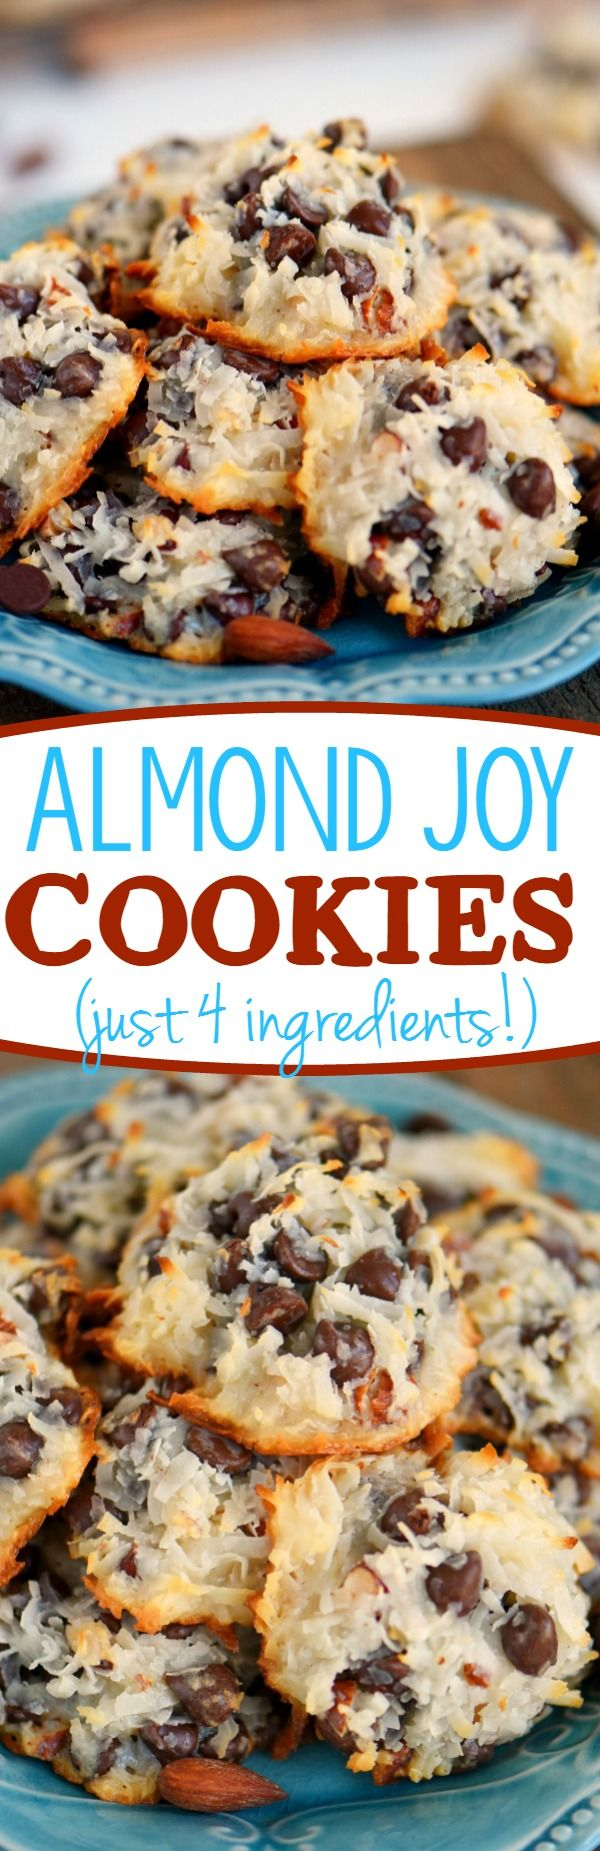 These easy Almond Joy Cookies take just four ingredients and don't even require a mixer! No beating, no chilling, just mix 'em up and throw 'em in the oven EASY! You're going to love these ooey gooey fabulous cookies! // Mom On Timeout #almondjoycookies #almond #coconut #chocolate #cookies #recipe #momontimeout